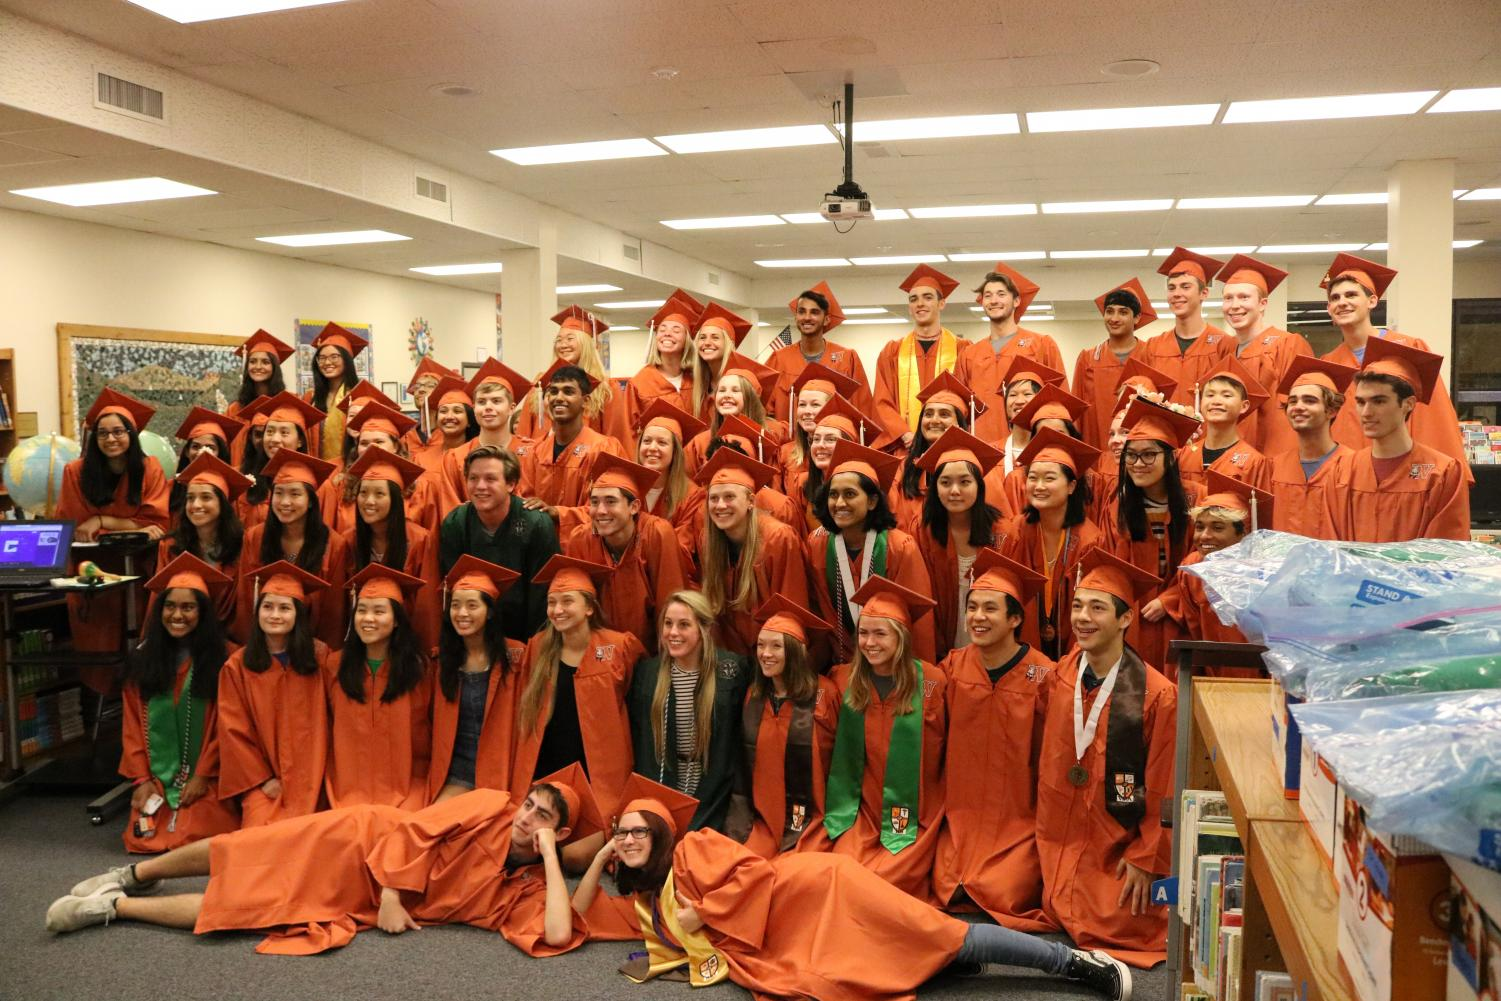 Seniors+from+Spicewood+Elementary+School+pose+for+a+picture+in+the+library.